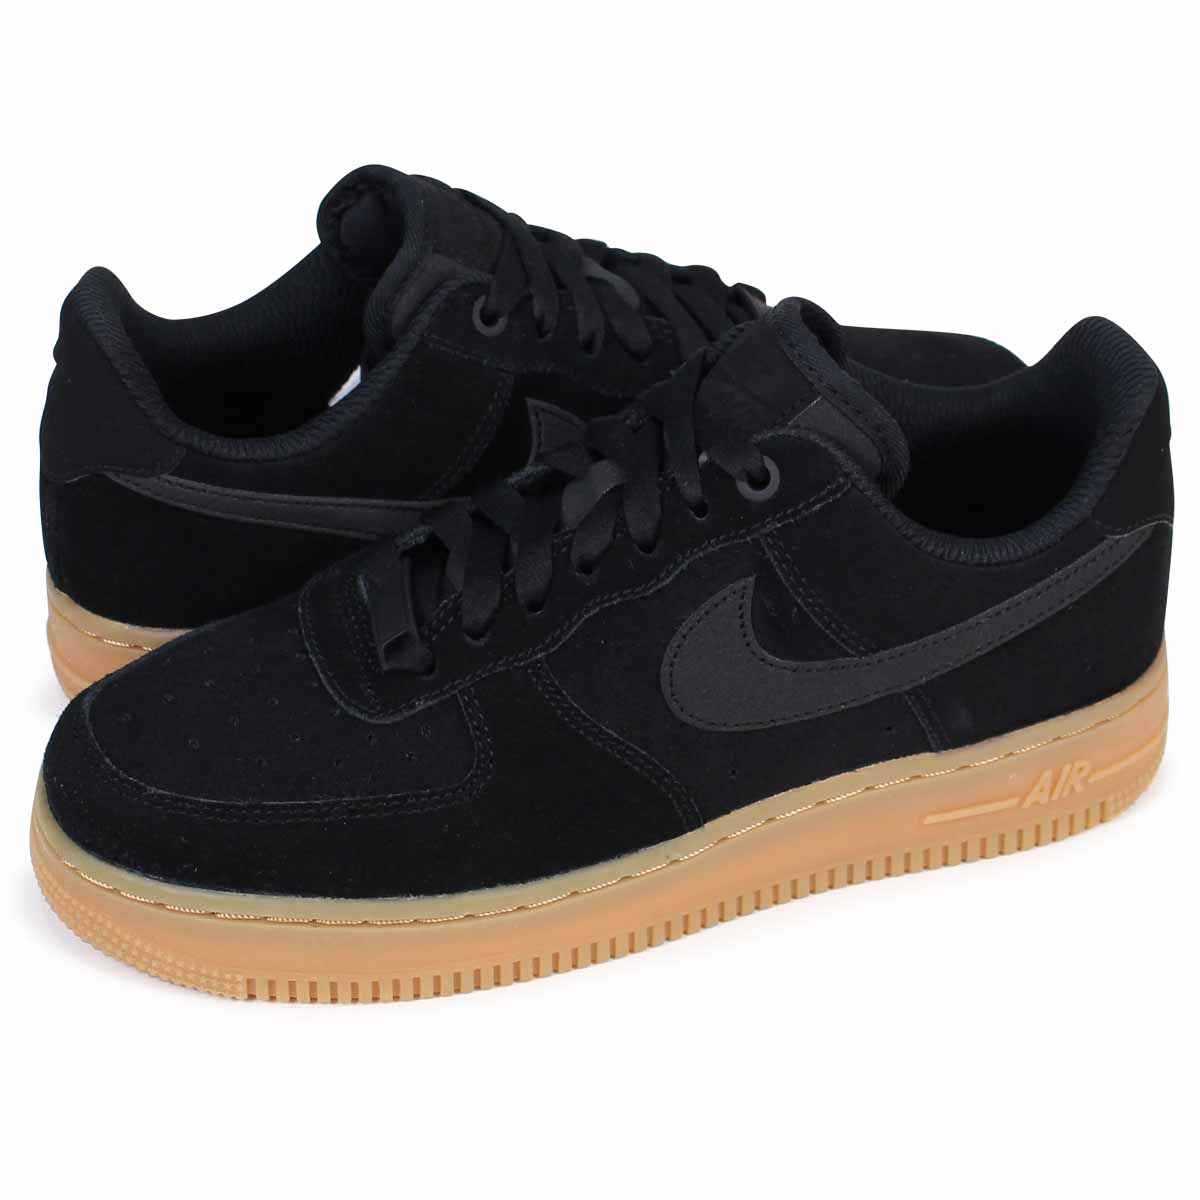 NIKE WMNS AIR FORCE 1 SE Nike air force 1 07 lady's sneakers AA0287 002 shoes black